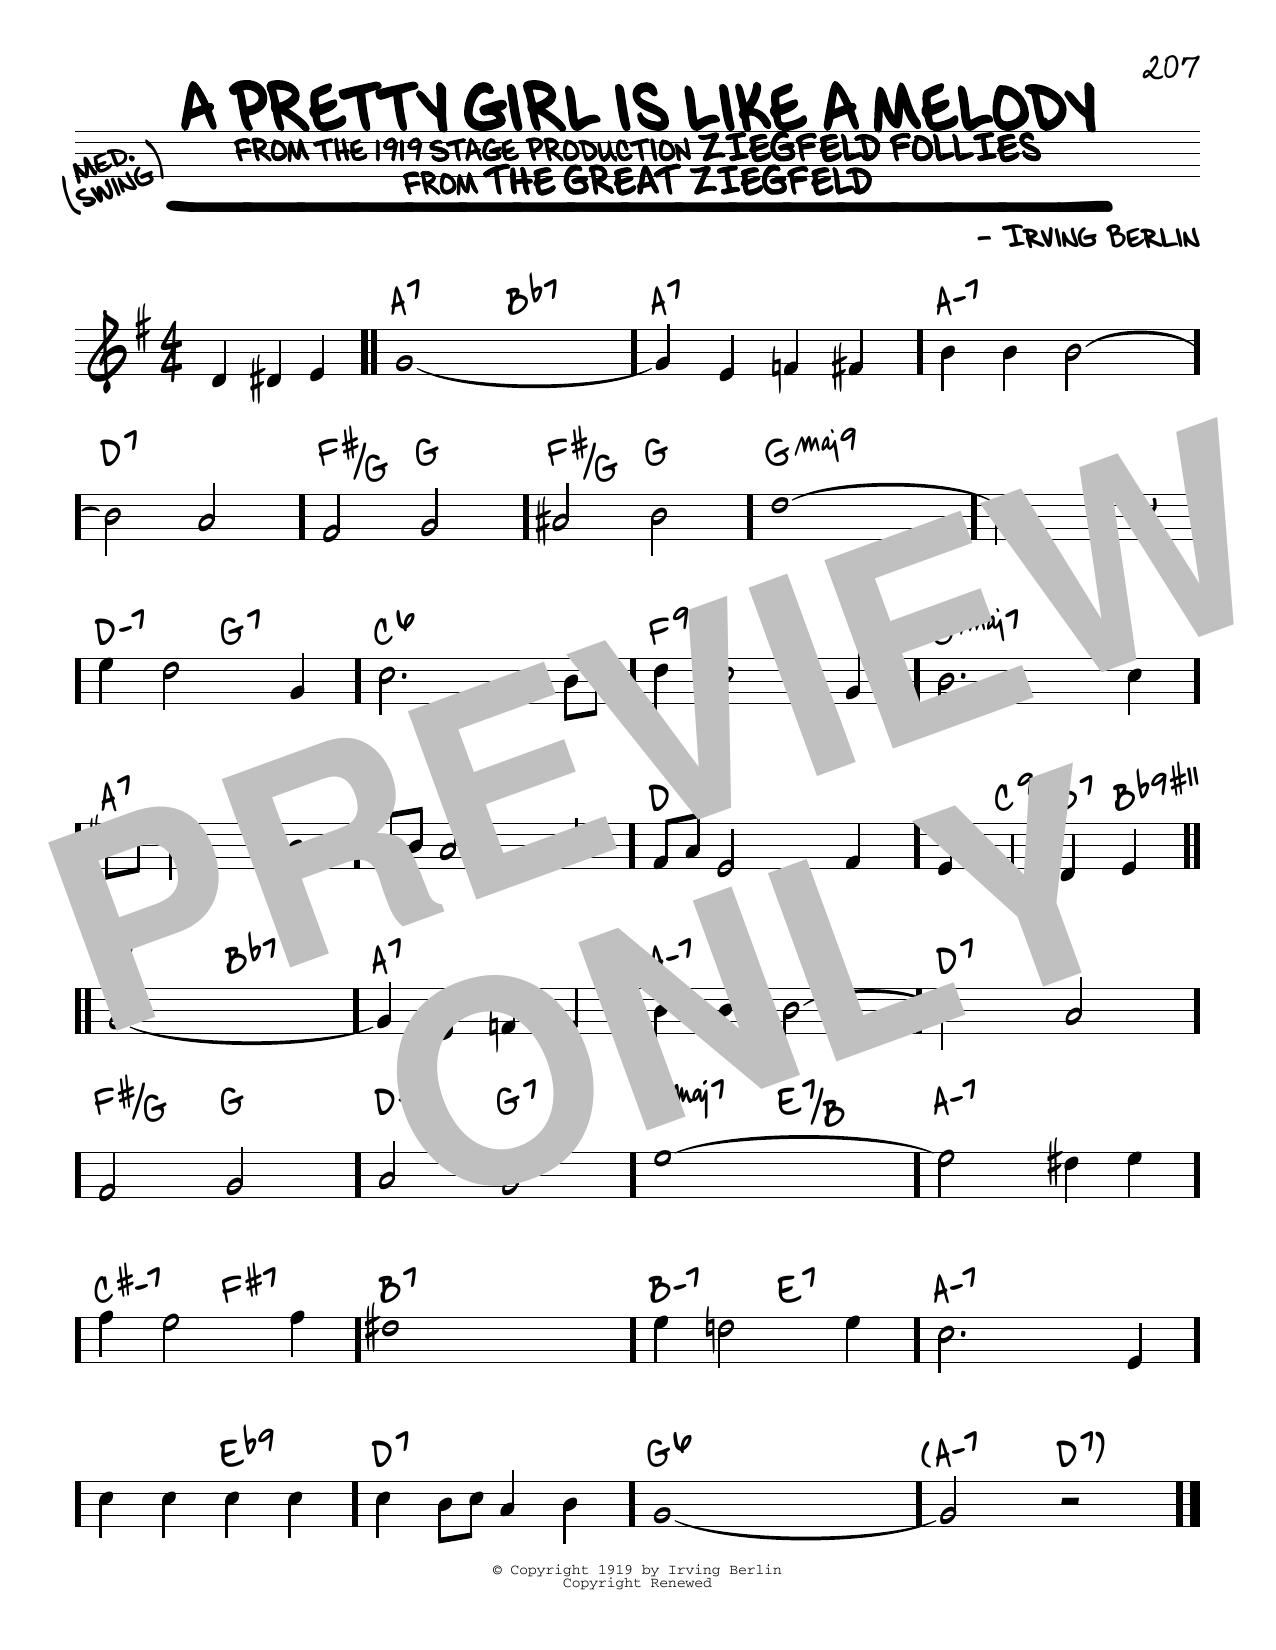 A Pretty Girl Is Like A Melody Sheet Music